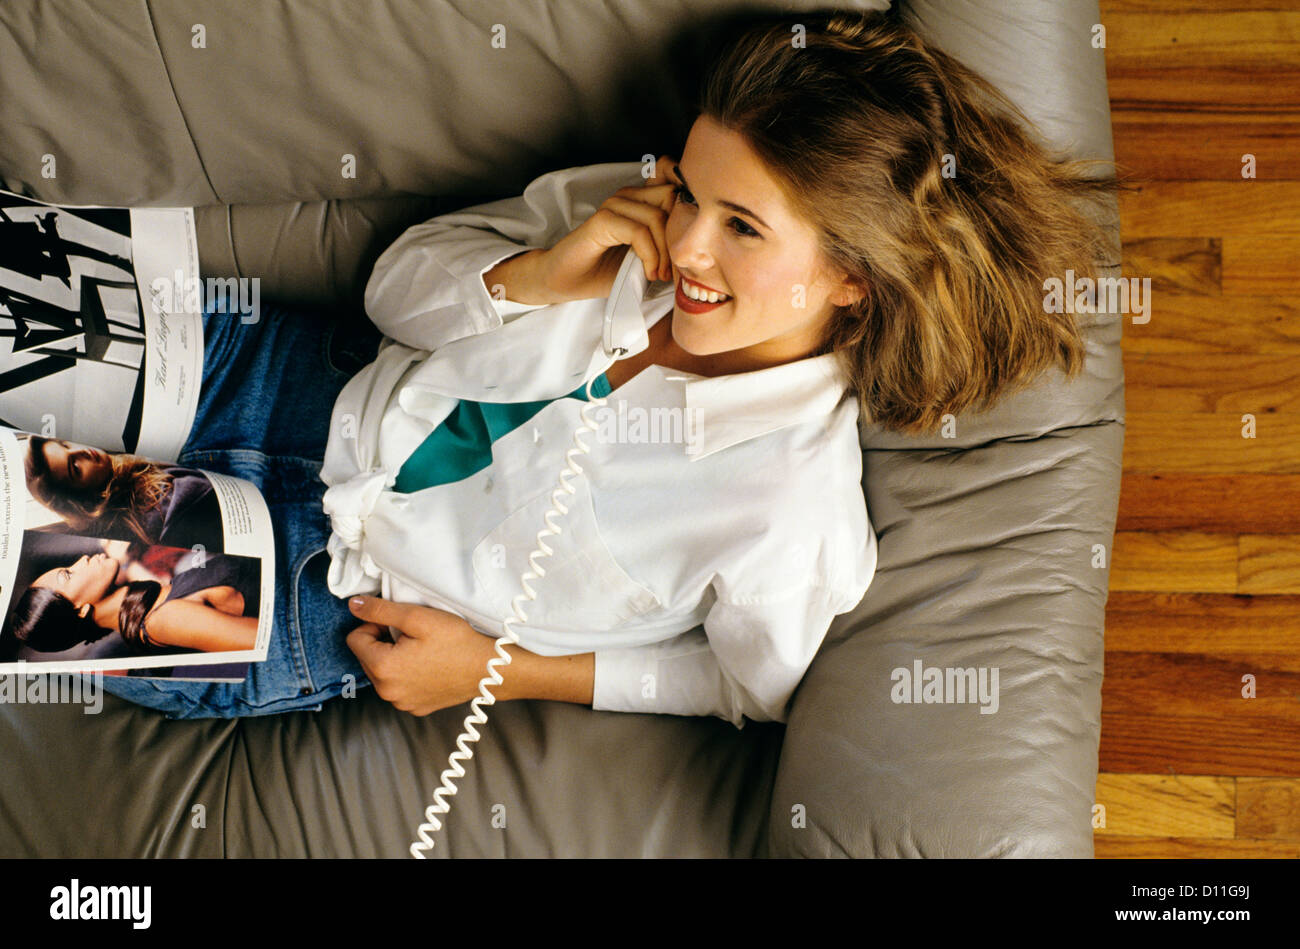 1990s WOMAN WHITE BLOUSE SOFA COUCH TALKING TELEPHONE - Stock Image